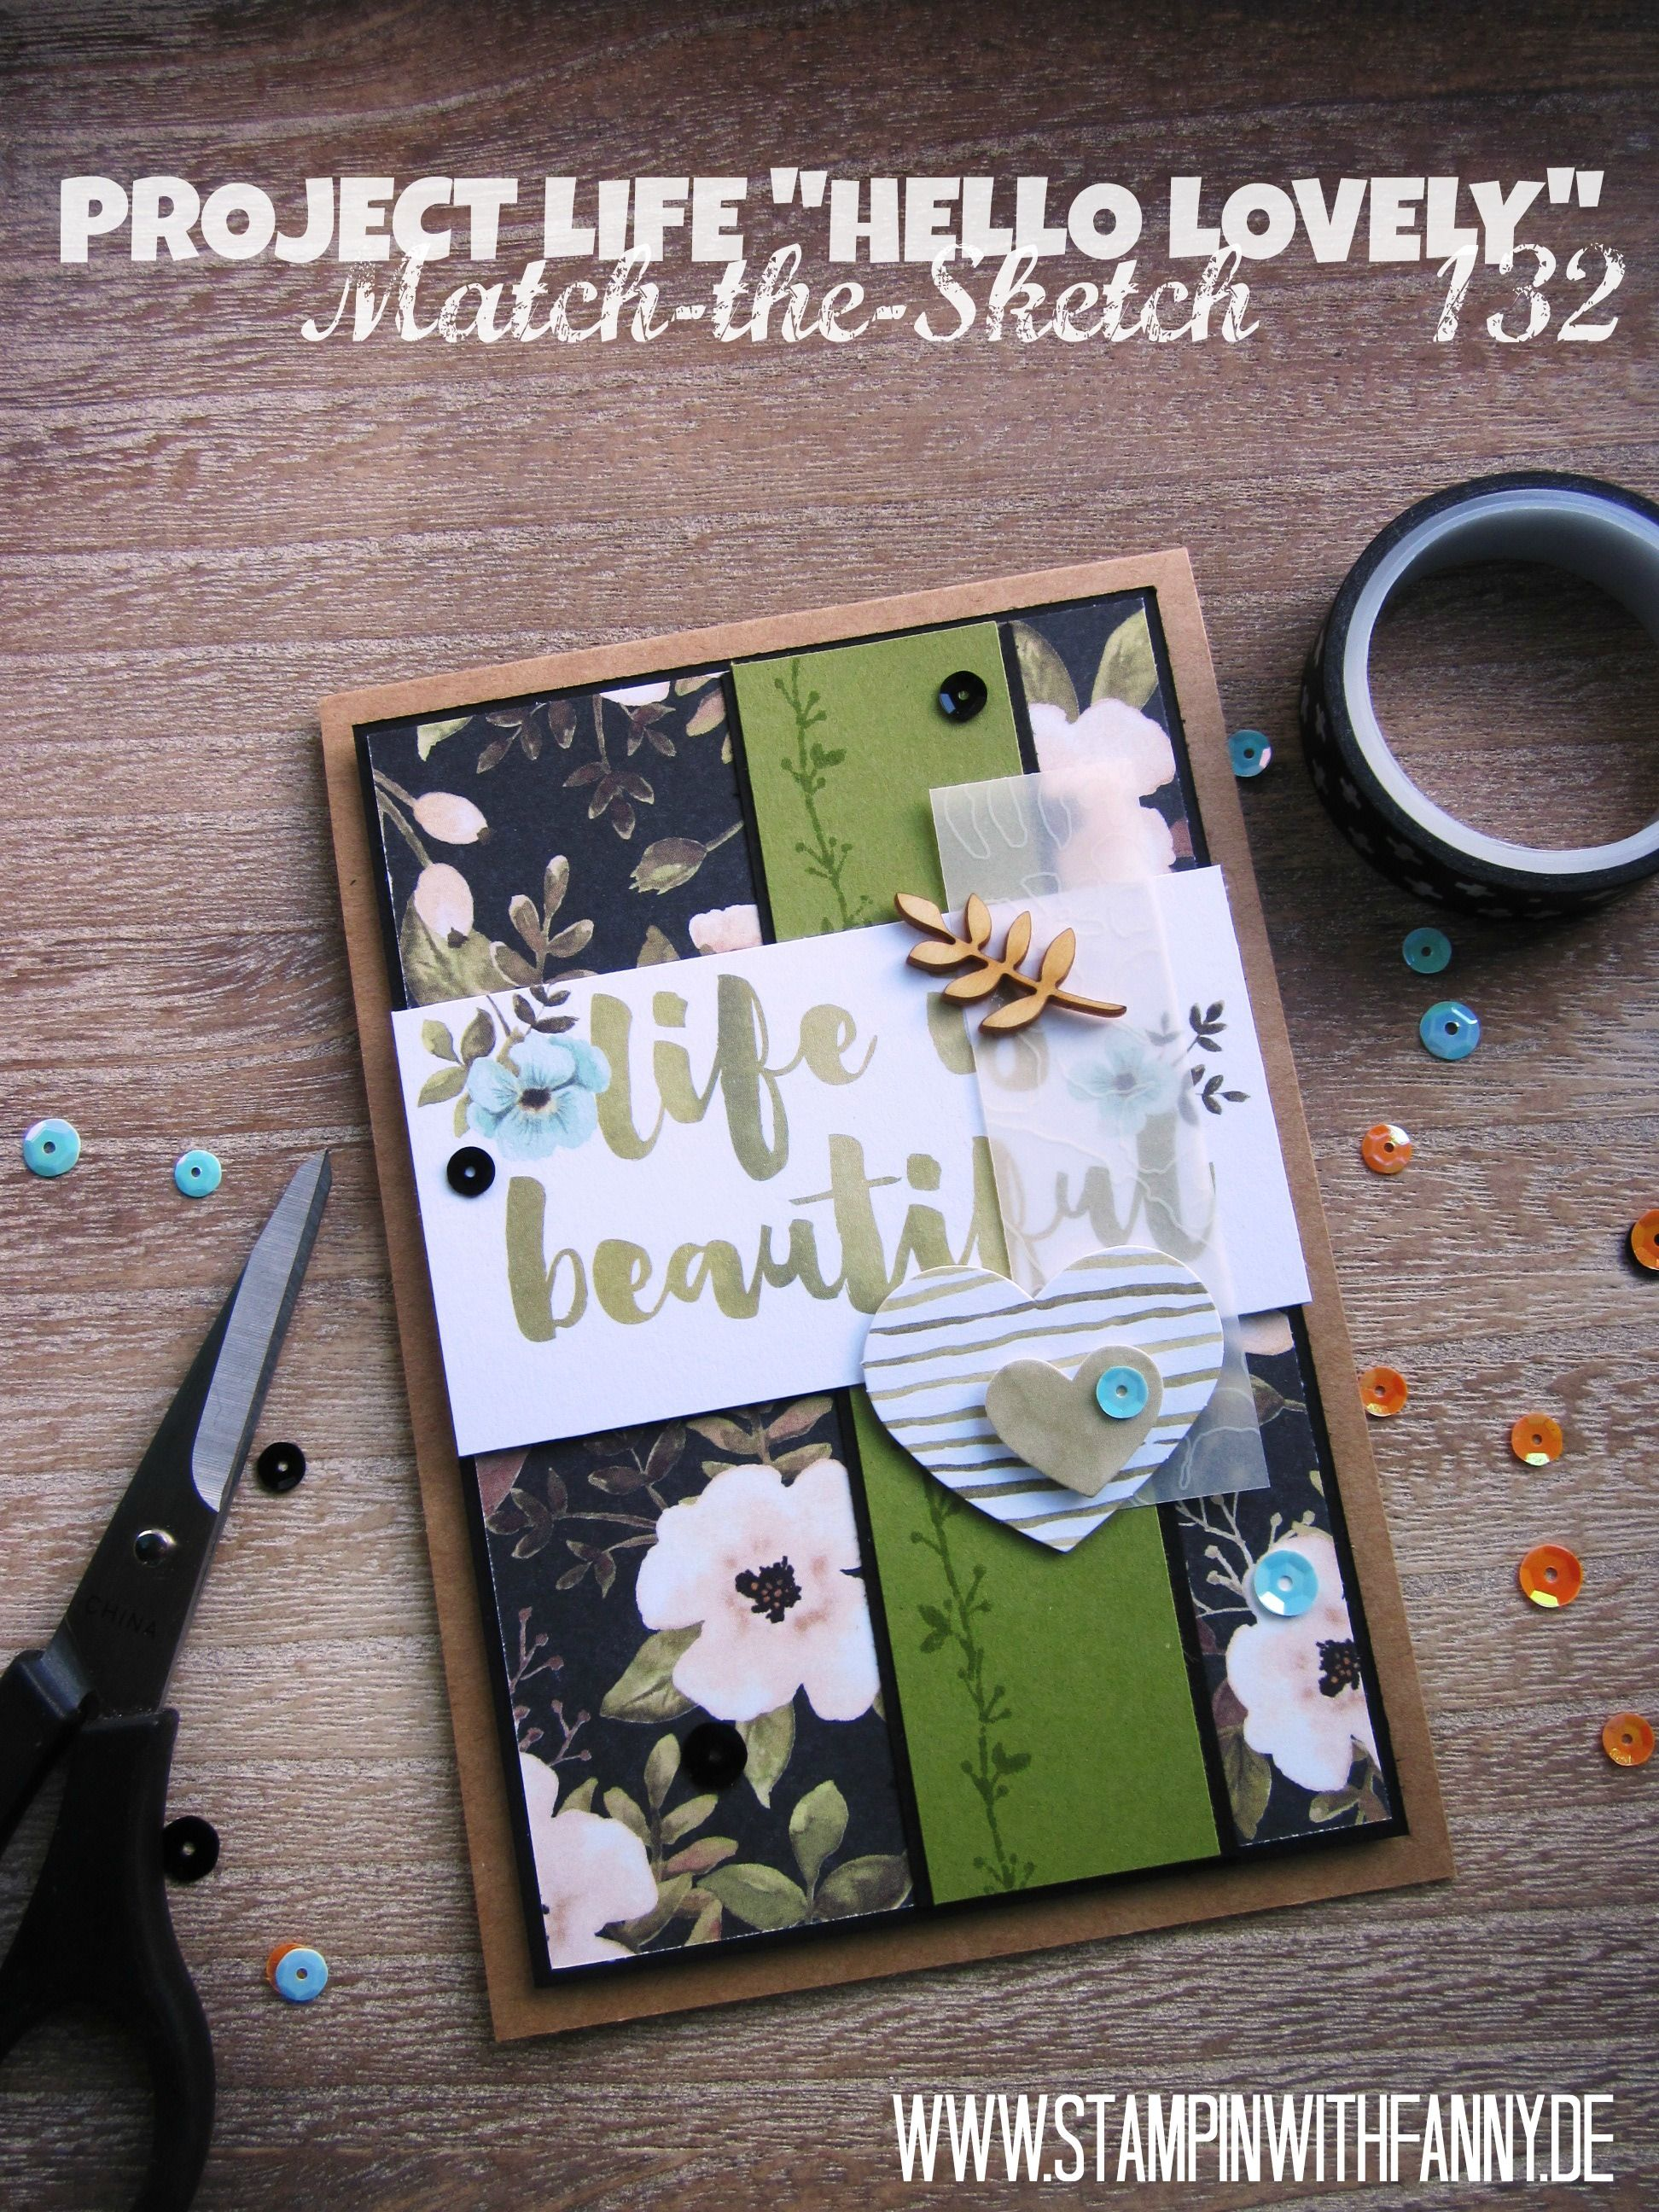 stampin up stampinwithfanny project life card hallo sonnenschein hello lovely matchthesketch life is beautiful #stampinwithfanny